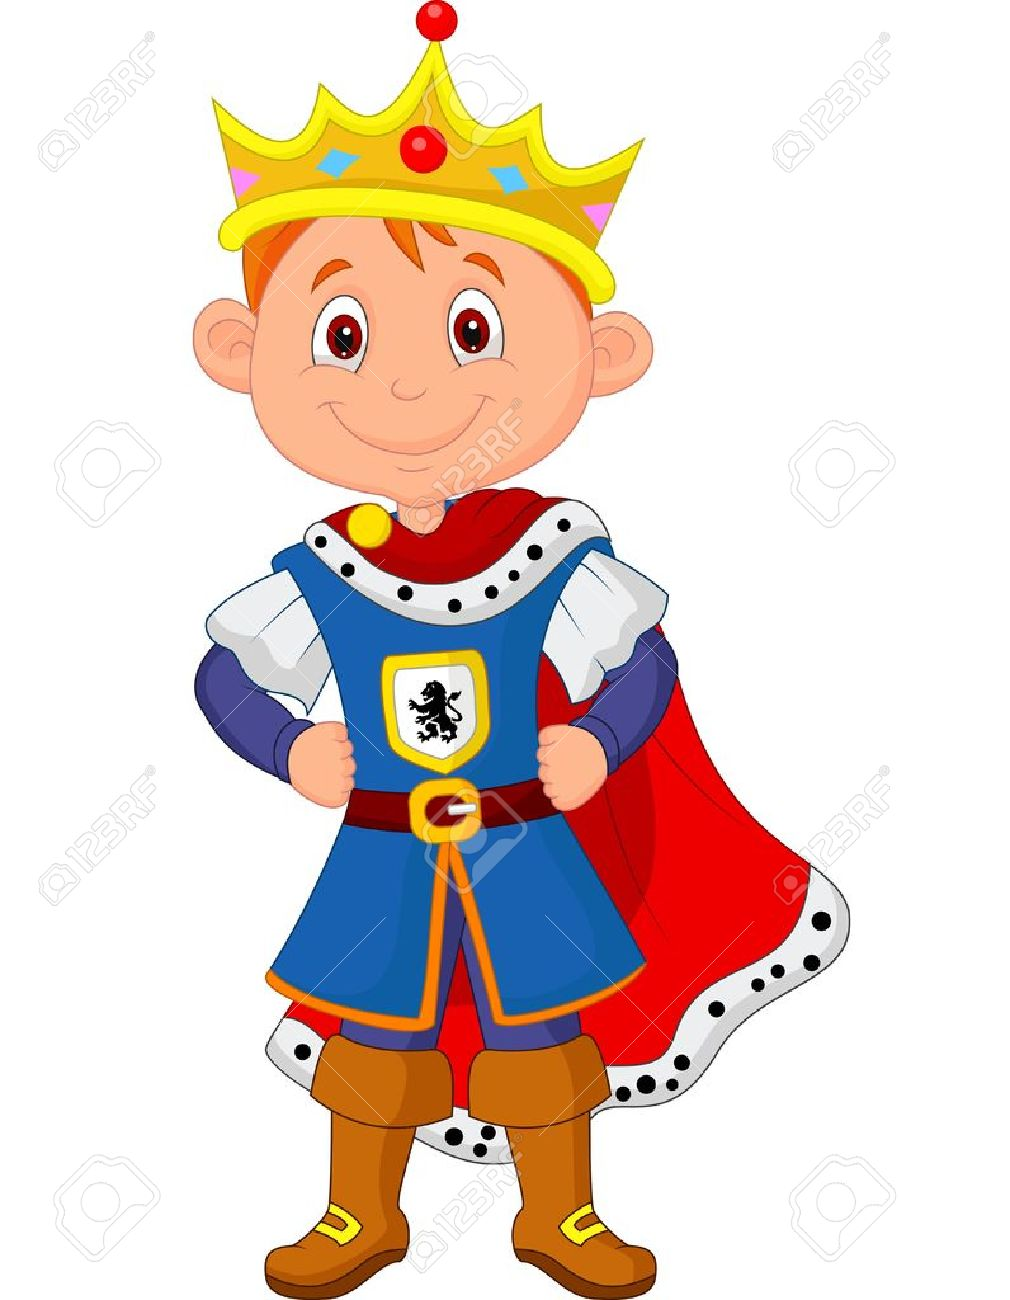 kid cartoon with king costume royalty free cliparts vectors and